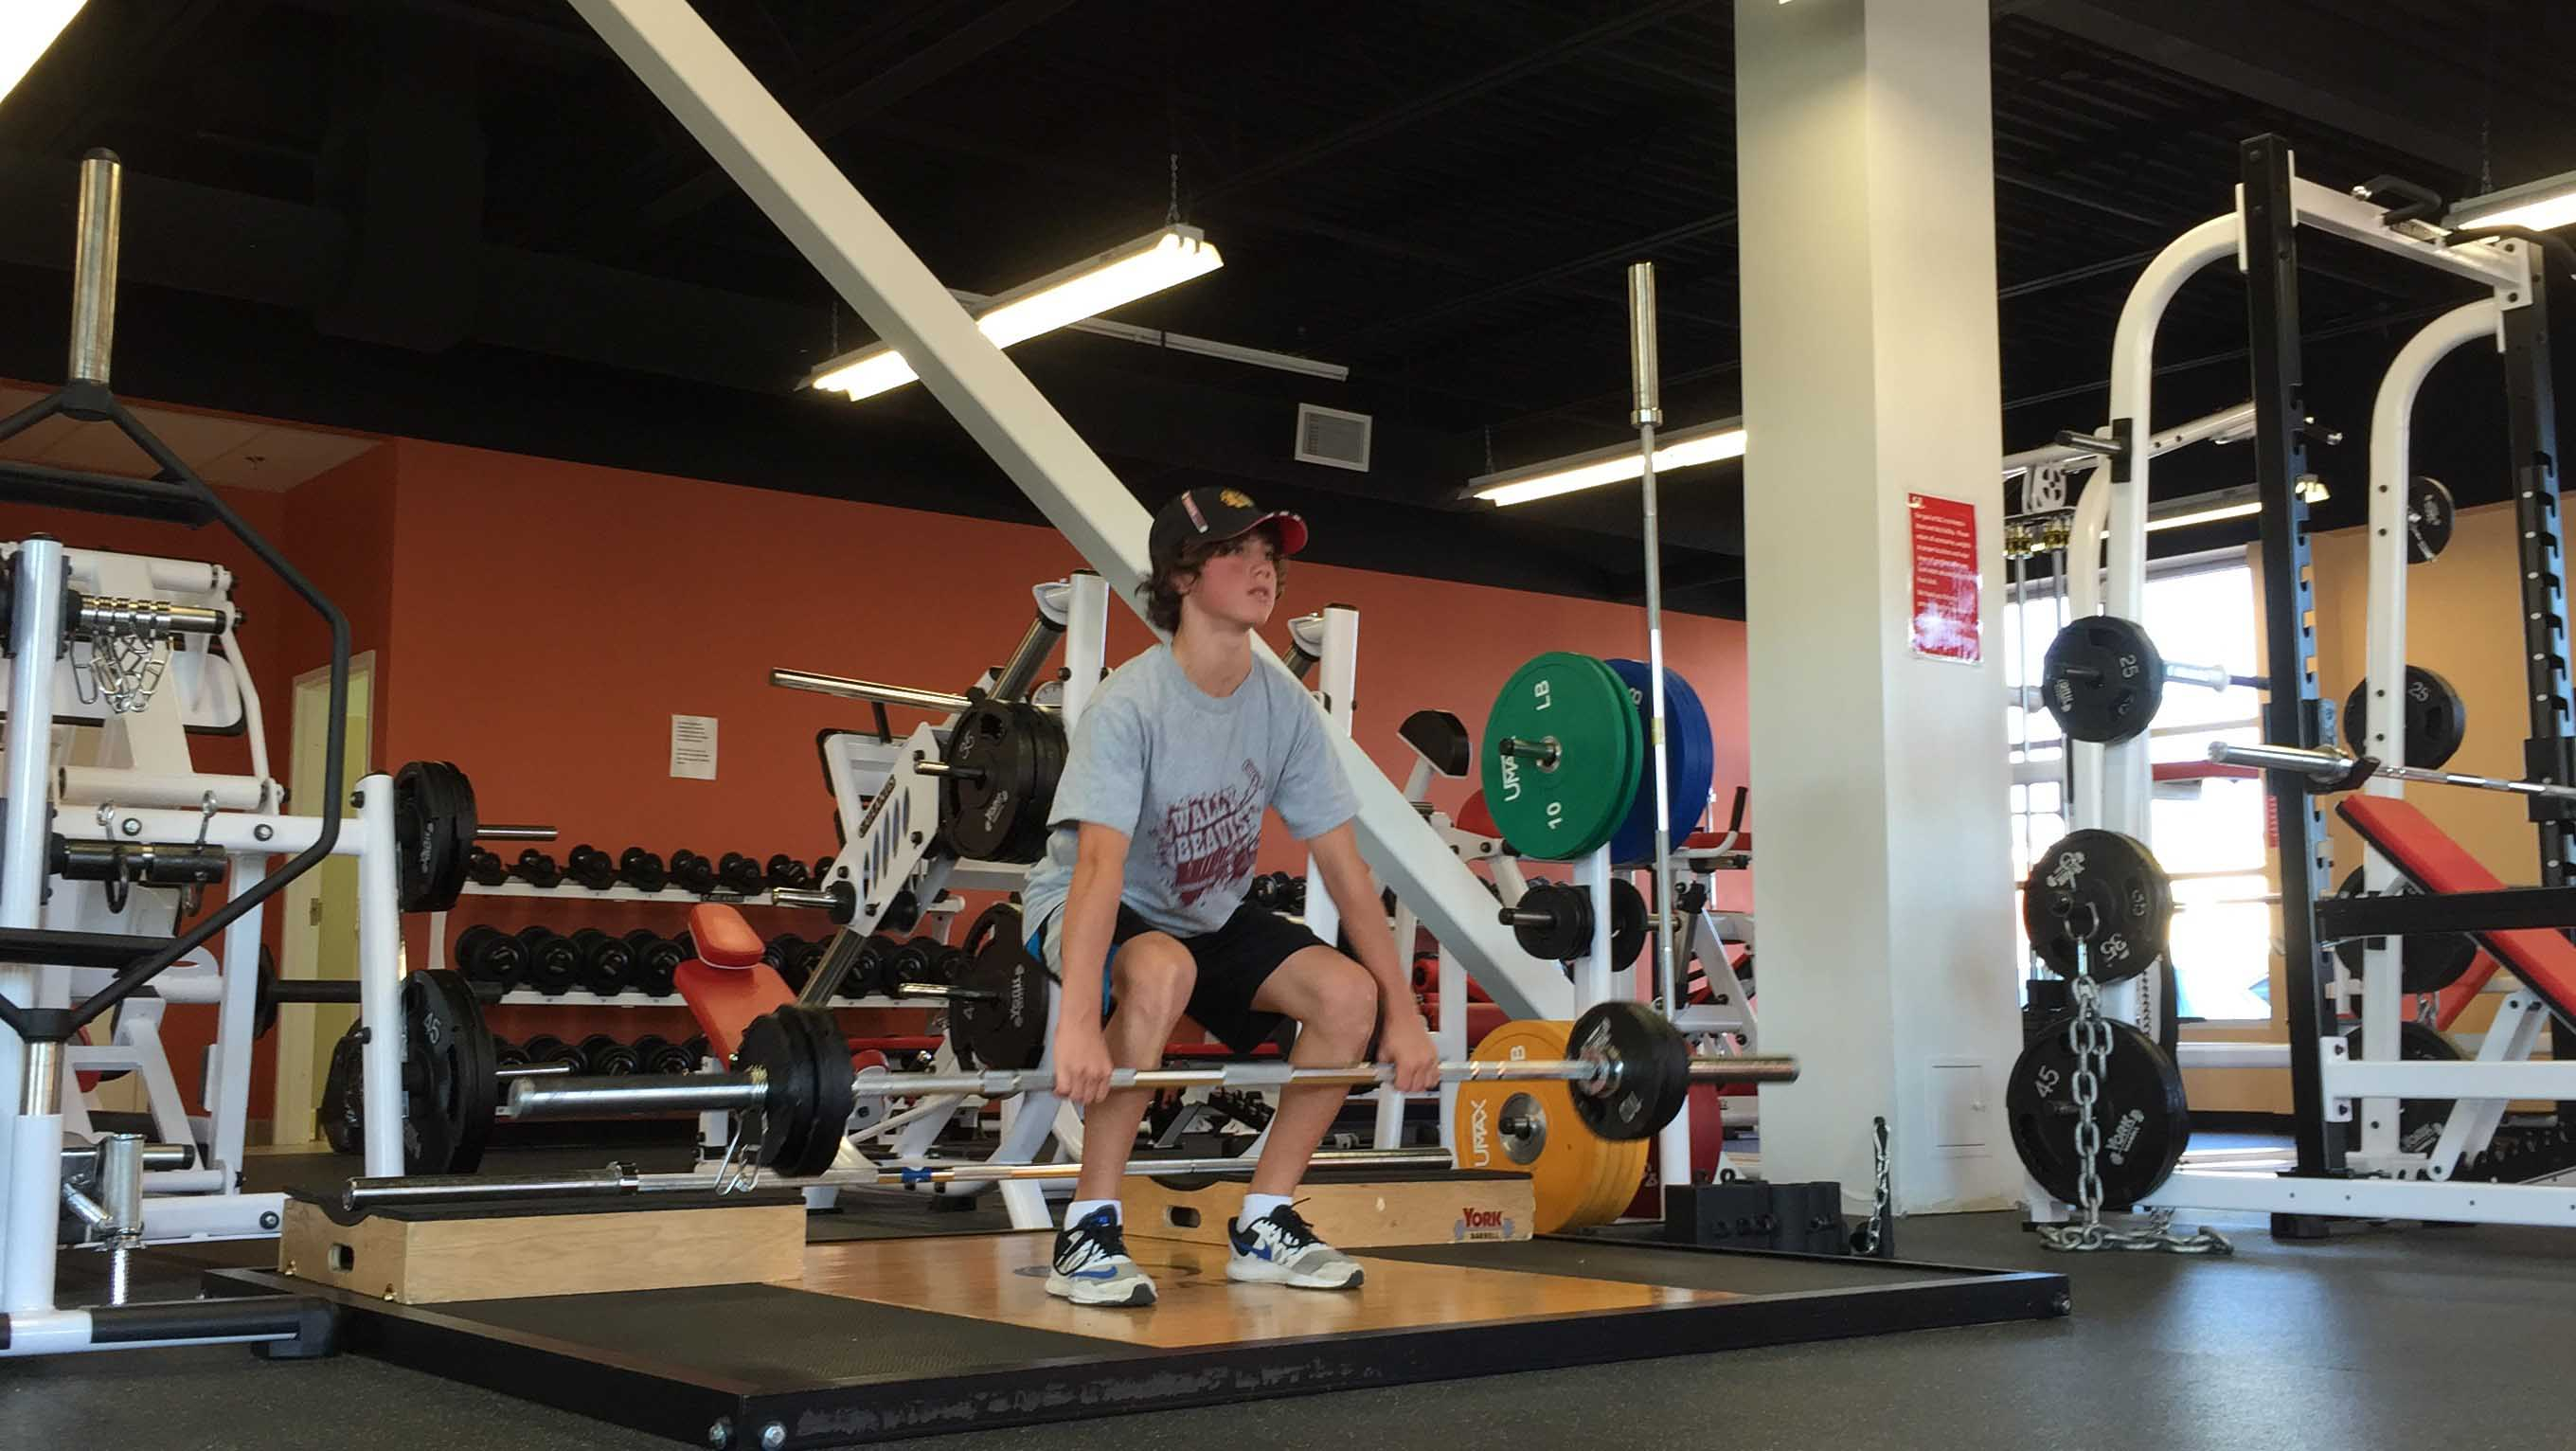 NLC-Fitness-Centre-Guelph-Workout-30 His deadlift increased from 65 lbs to 105 lbs